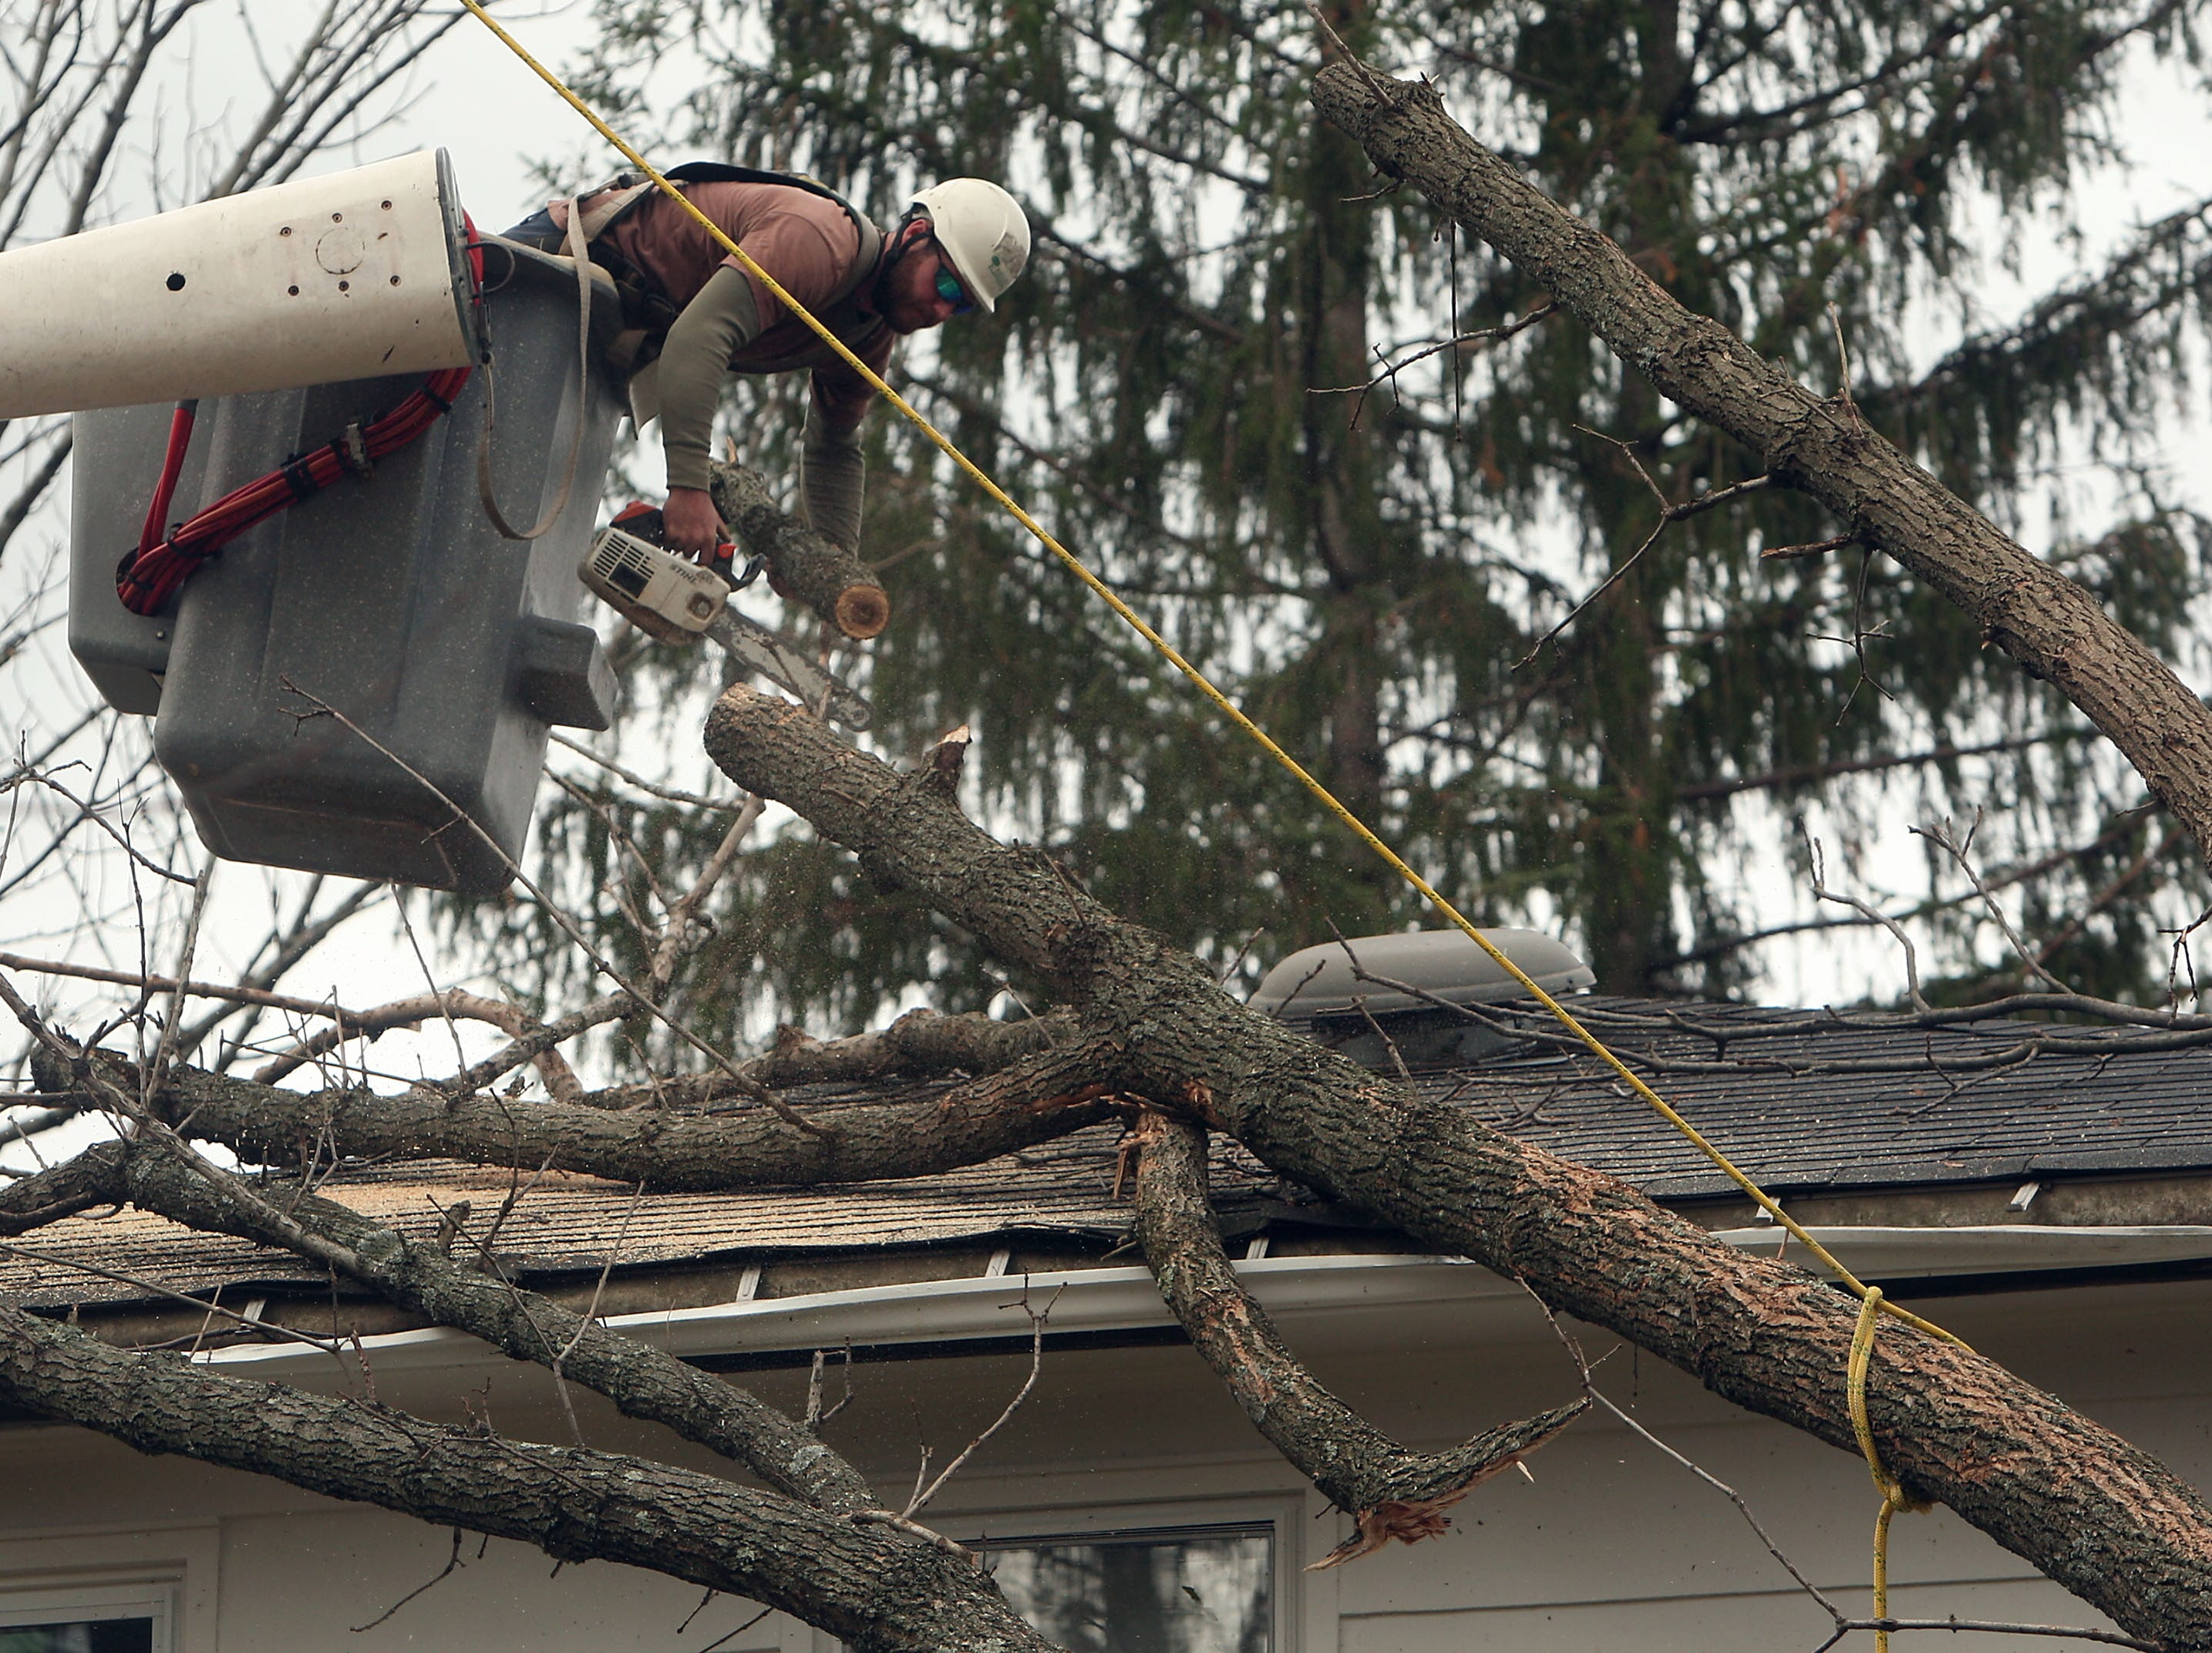 Madison, NJ- November 1, 2012--A contractor for Bartlett Tree Services cuts down a large tree that landing on a Madison, NJ home as locals continue the recovery process after Hurricane Sandy devastated the eastern seaboard.